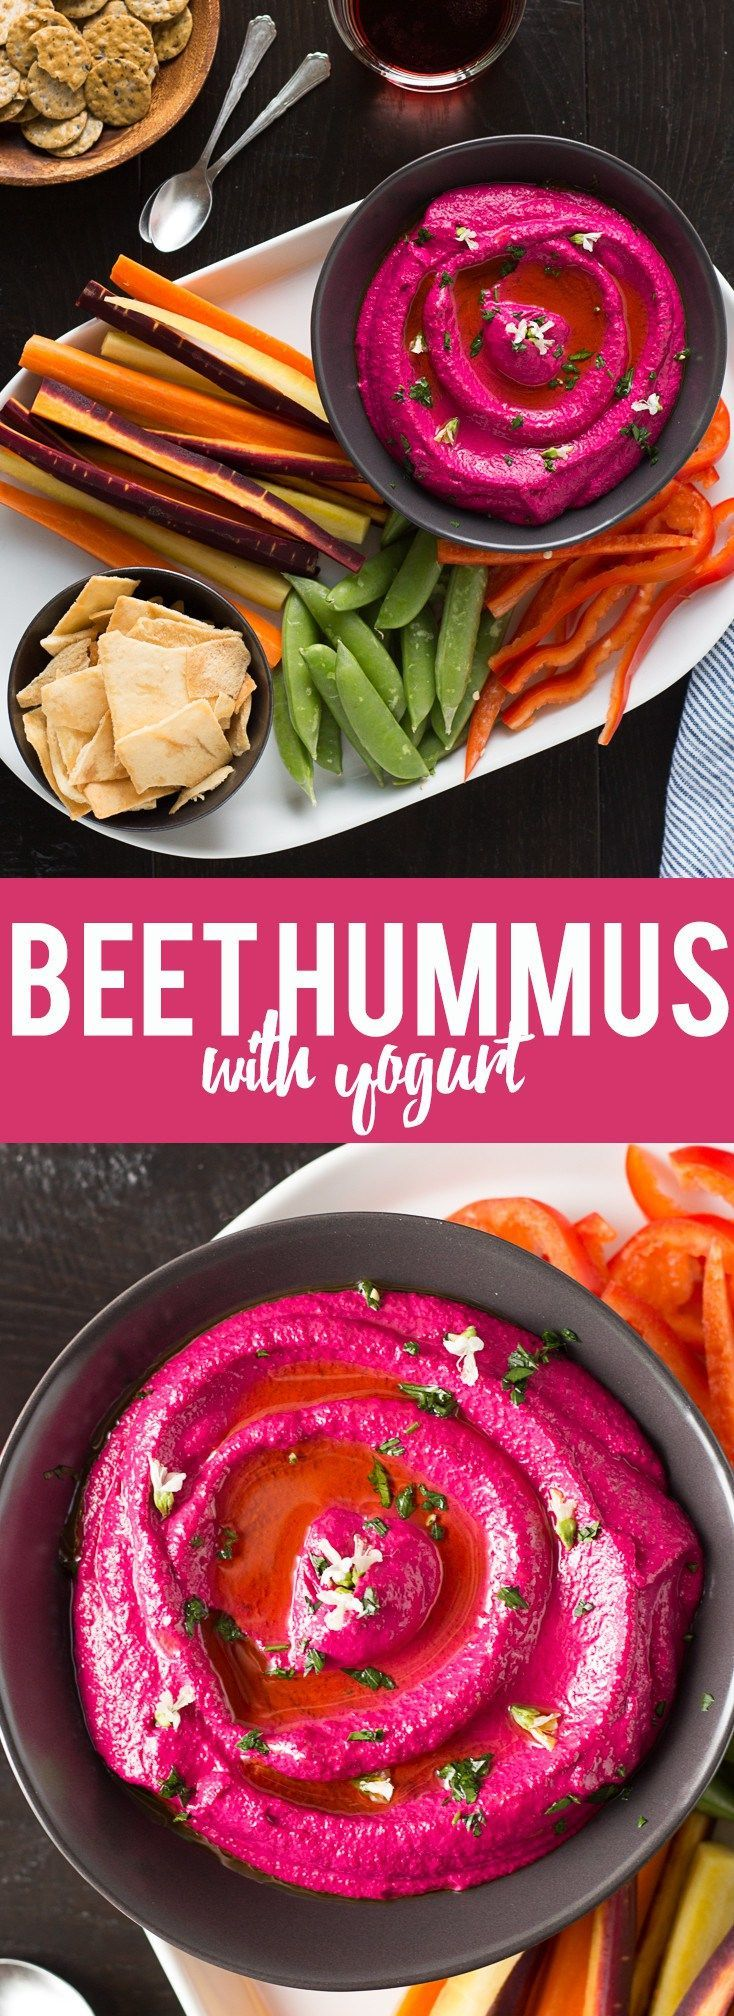 This Creamy Beet Hummus with Yogurt will soon be your favorite way to eat your beets! Roasted beets, tahini and yogurt are blended together to make a creamy and healthy dip with a bright pink color that will blow your mind!  Note: This was soooo good